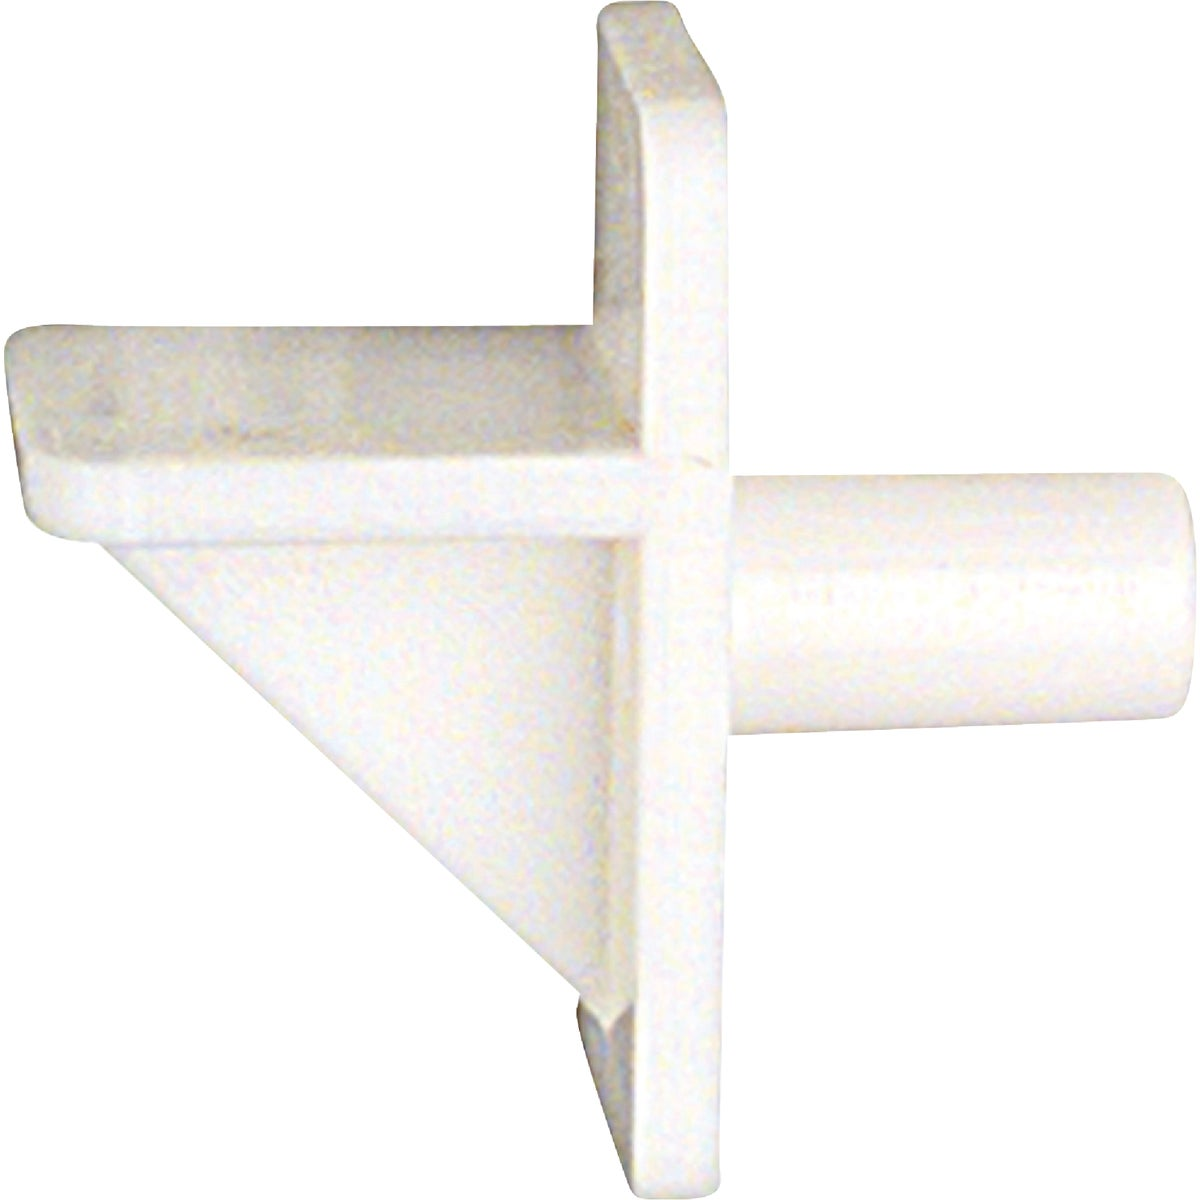 100PK WHT SHELF SUPPORT - N266213 by National Mfg Co